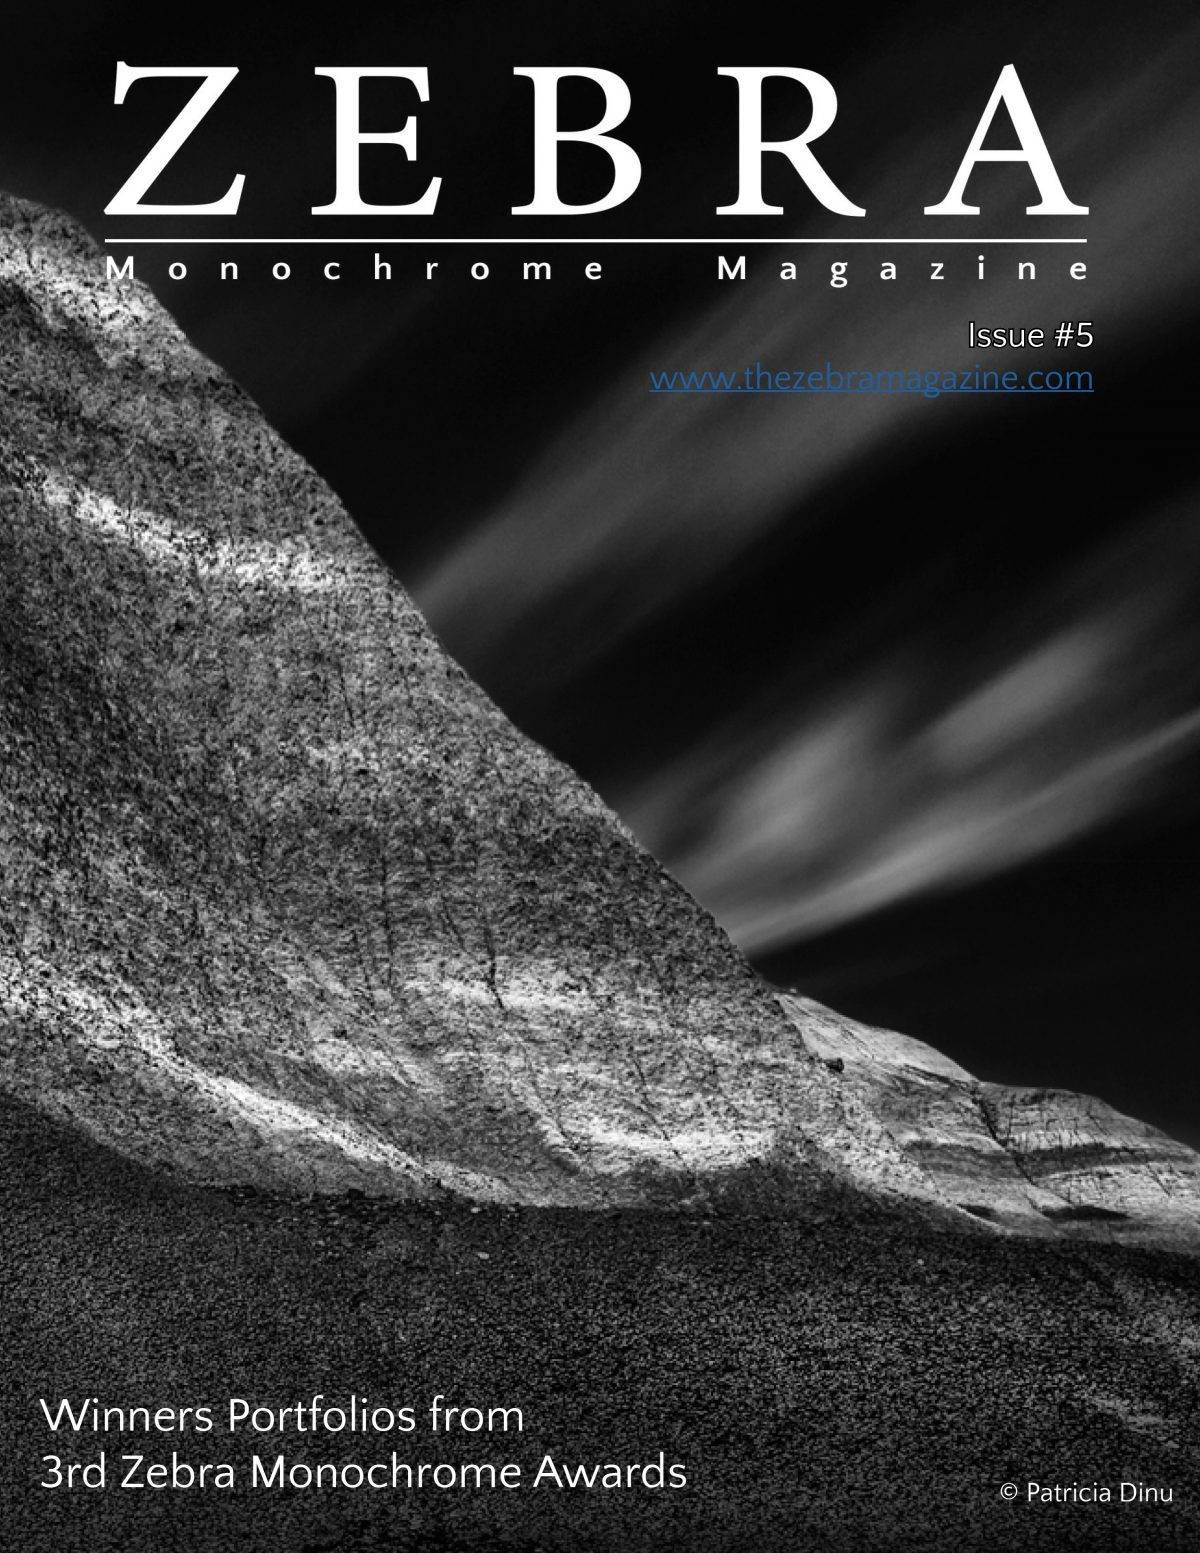 Zebra Magazine Issue 5 - Winners Portfolio from 3rd Zebra Monochrome Awards